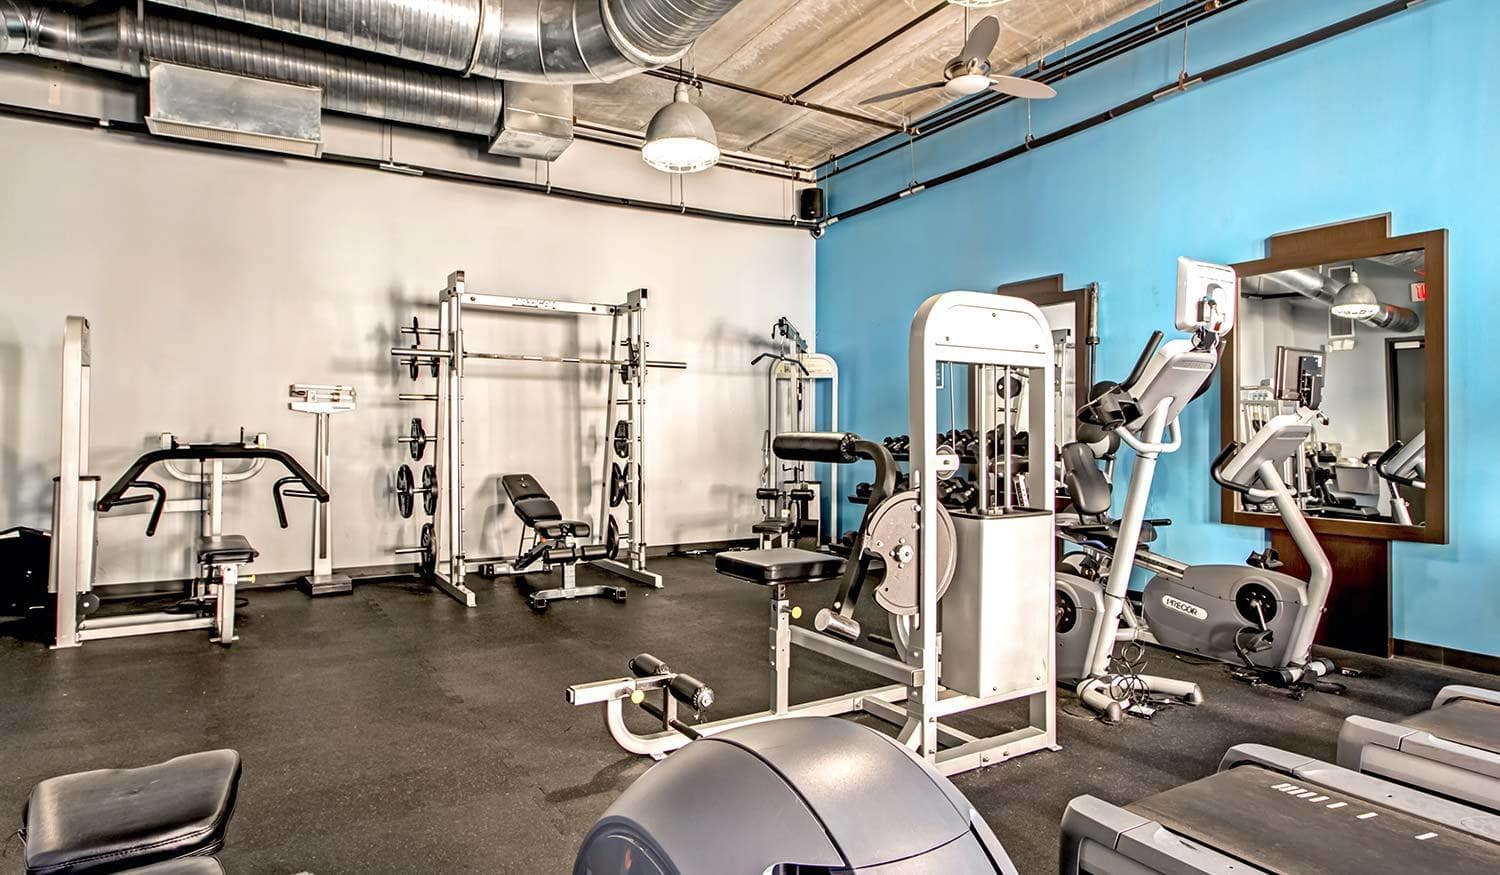 The on-site fitness center is just one of the many perks our residents enjoy here at The Exchange Lofts in Fort Lauderdale, Florida.